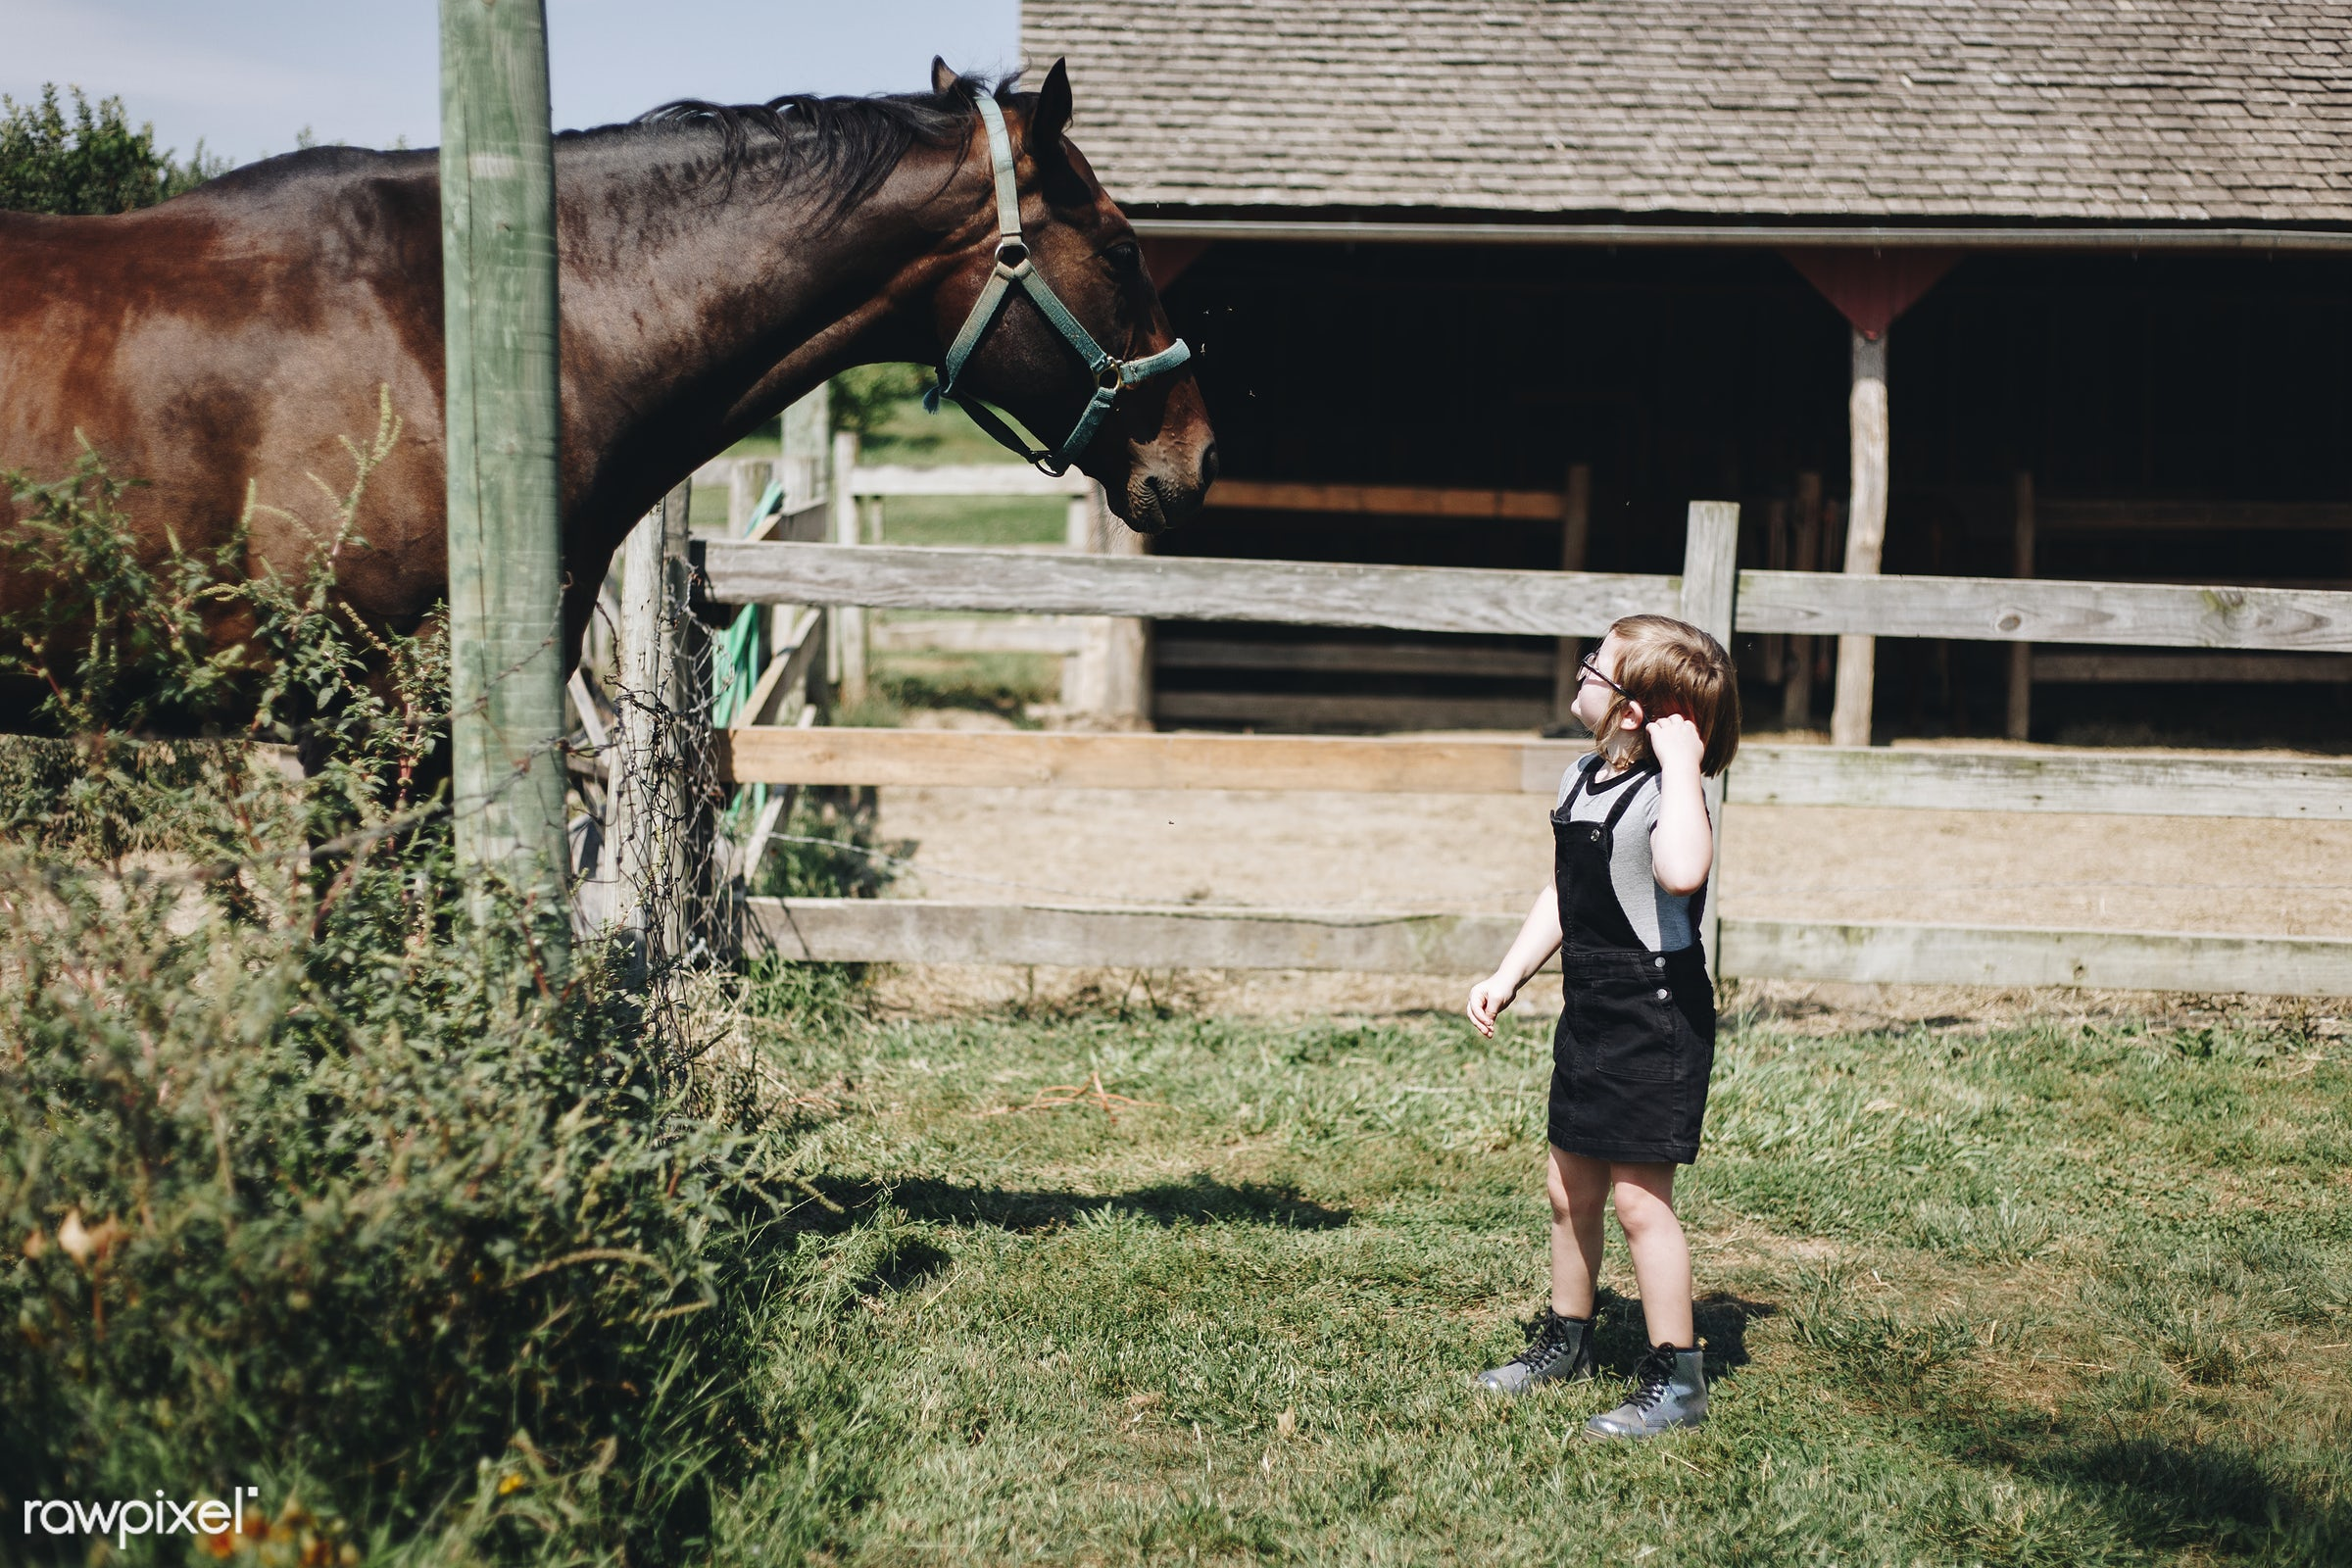 Young girl with a horse in the field - animal, pet, usa, activity, america, american, canada, canadian, caucasian, child,...